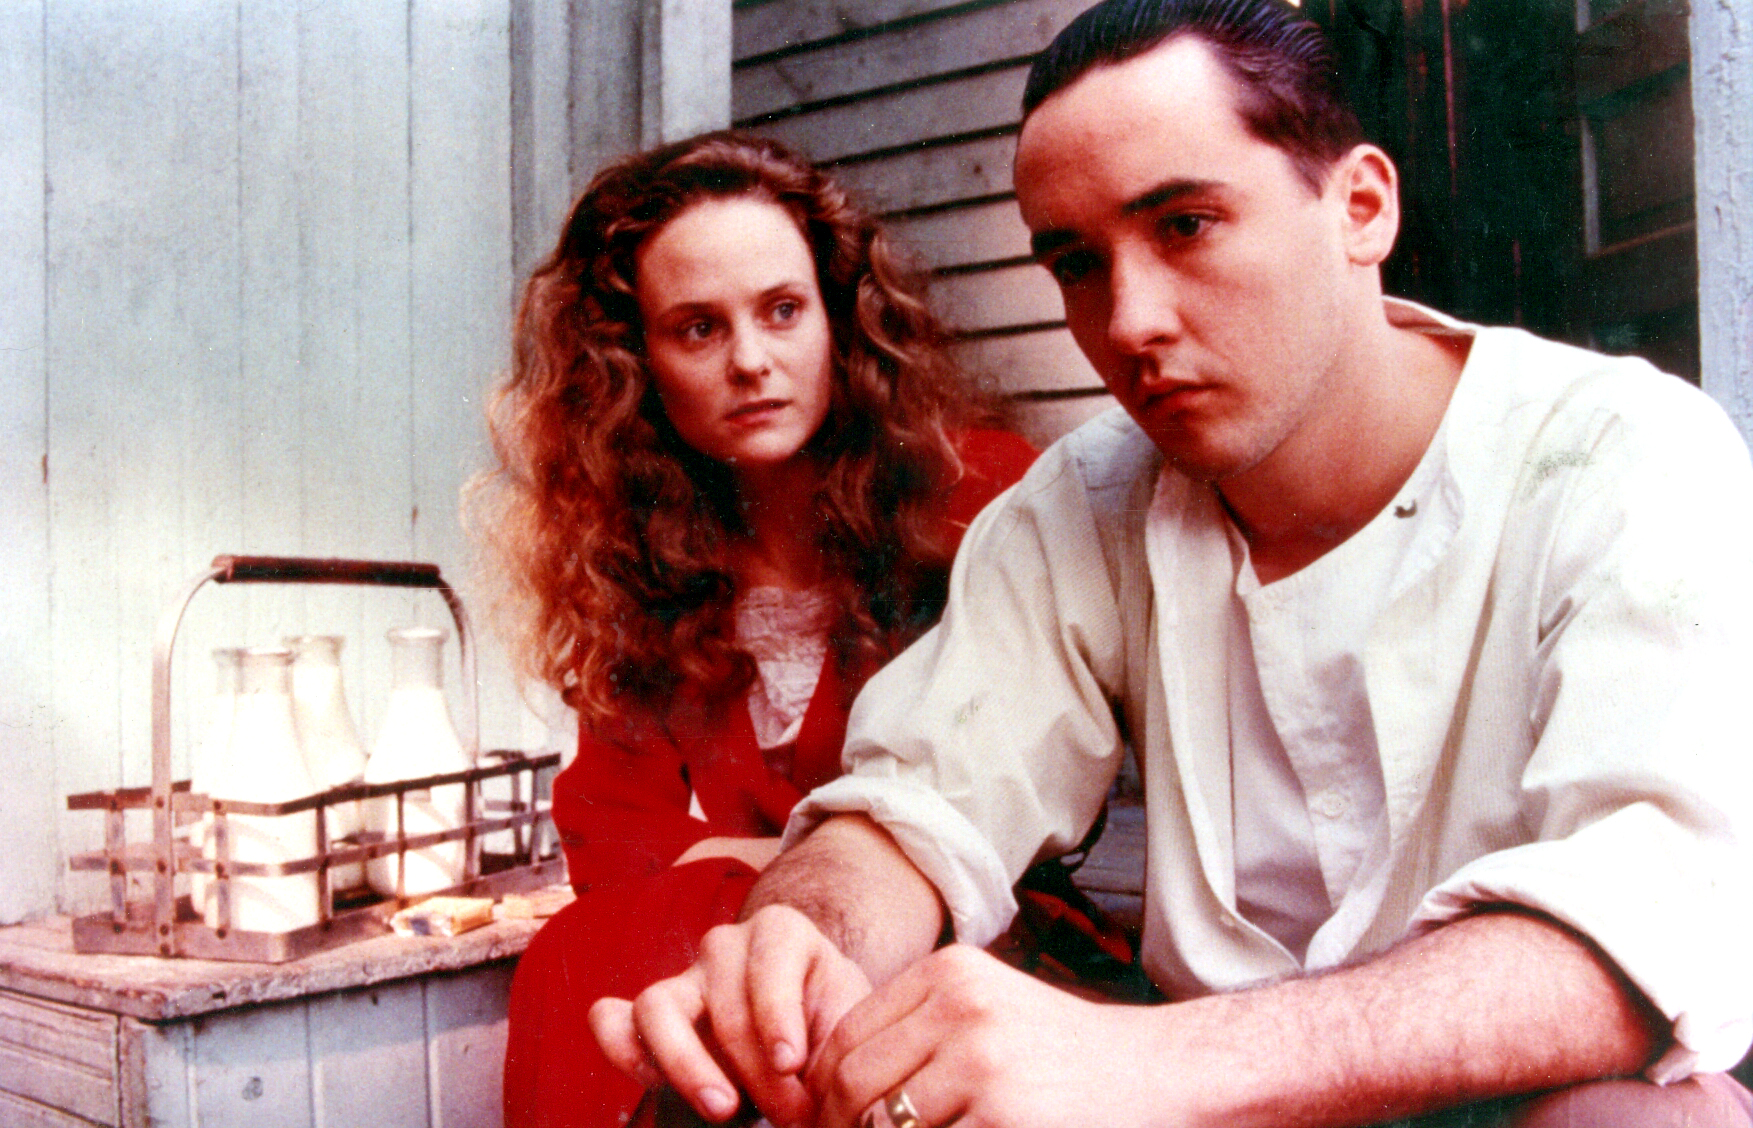 with John Cusack in red dress.jpg